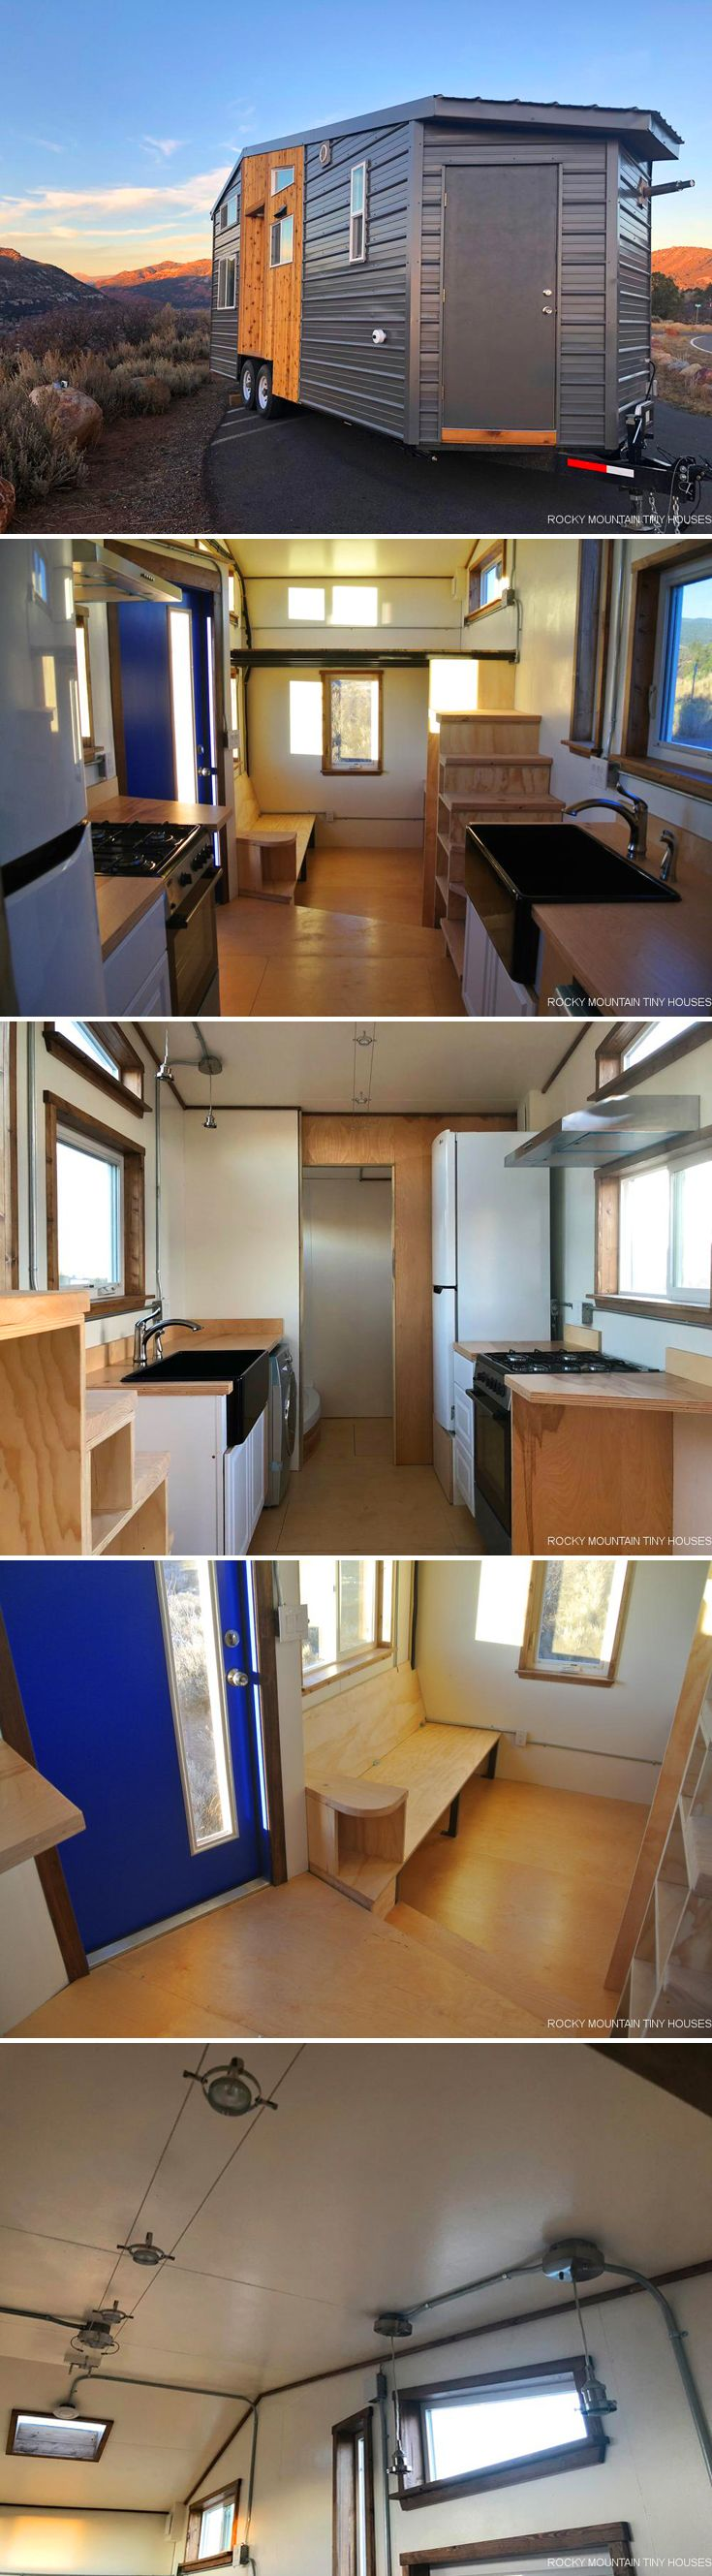 Built by Rocky Mountain Tiny Houses is this 24-foot industrial style tiny house, Wanderlust. The house was built for a military couple that wanted a home they could take with them wherever they get stationed.